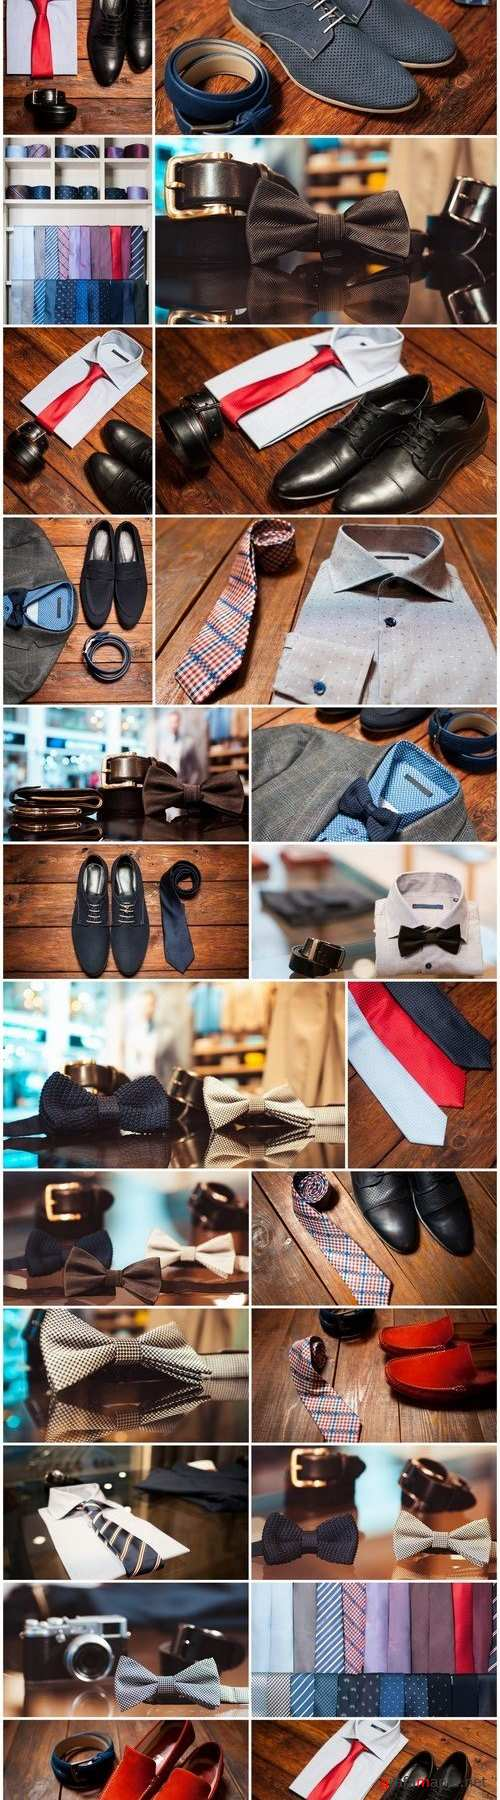 Men's Clothing and Accessories 2 - 26xUHQ JPEG Photo Stock